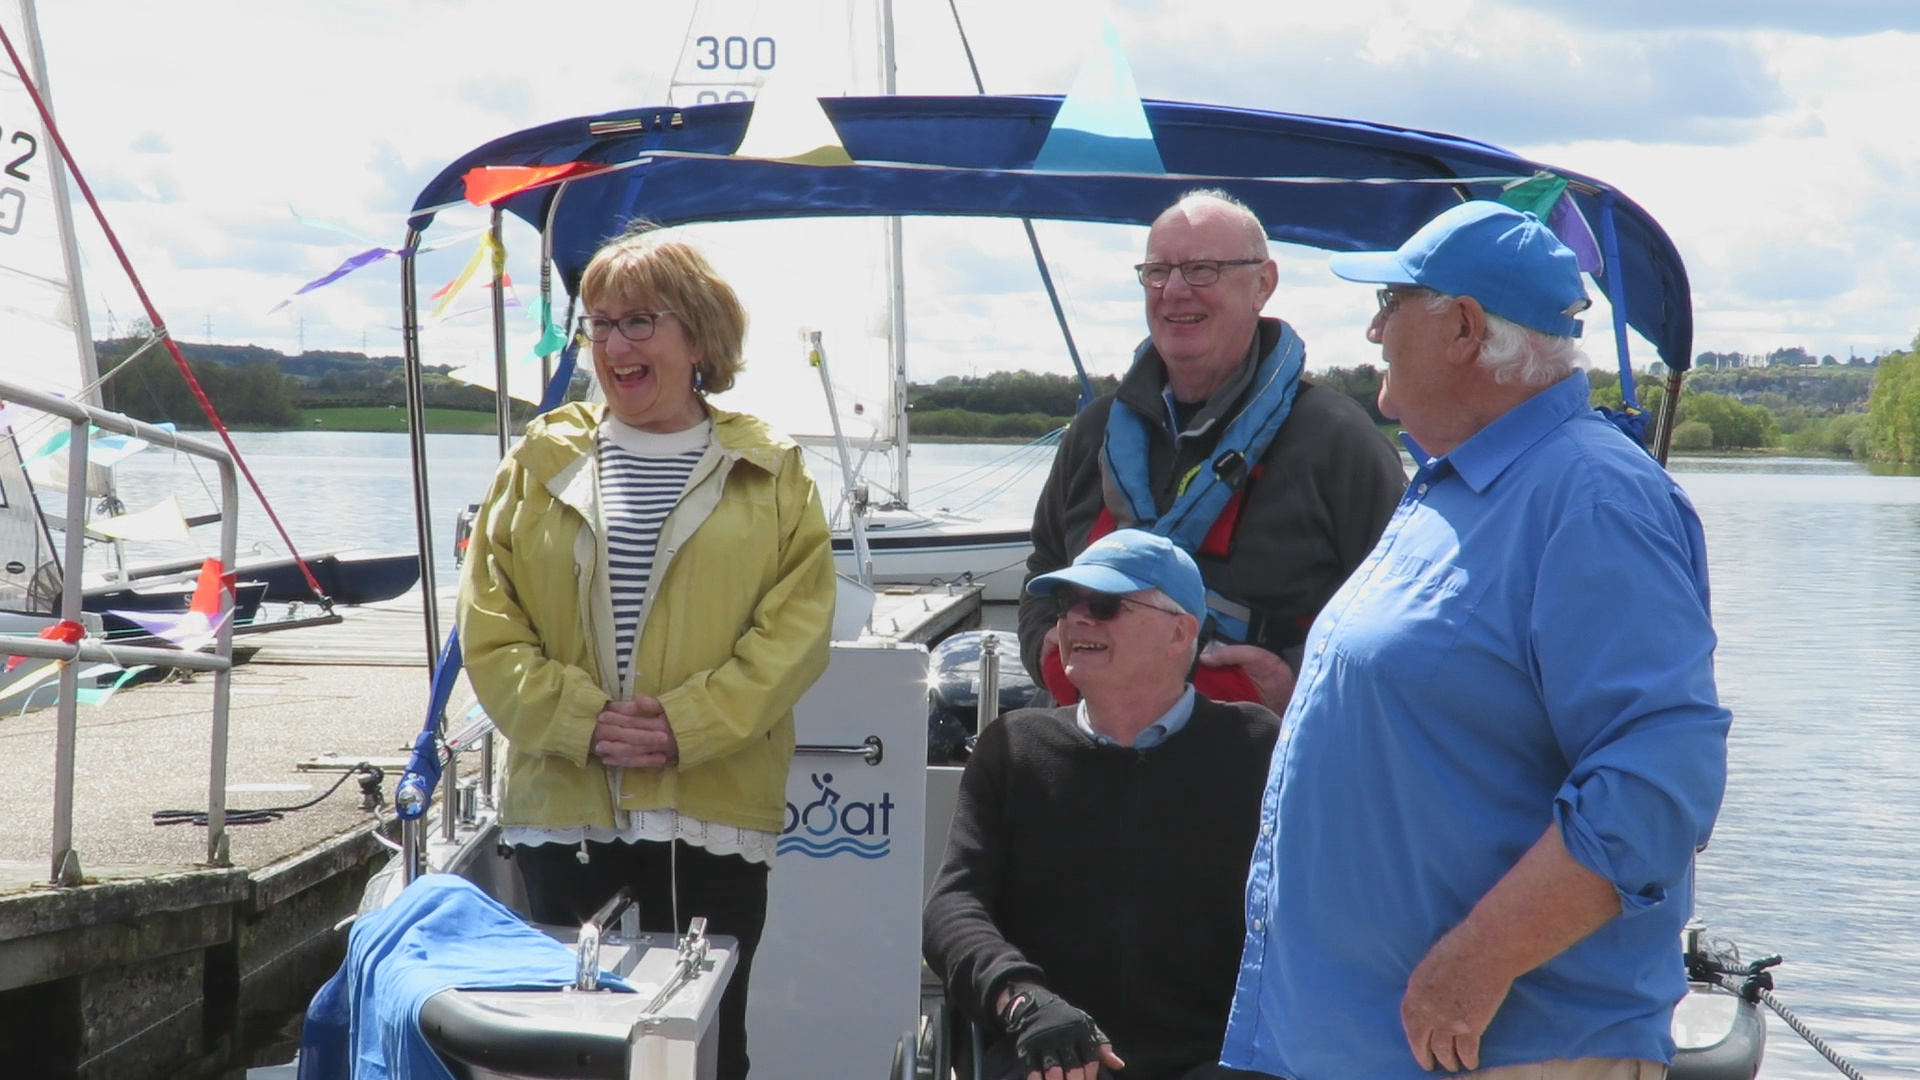 Annabelle Ewing MSP was guest of honour and declared the V20 officially launched.